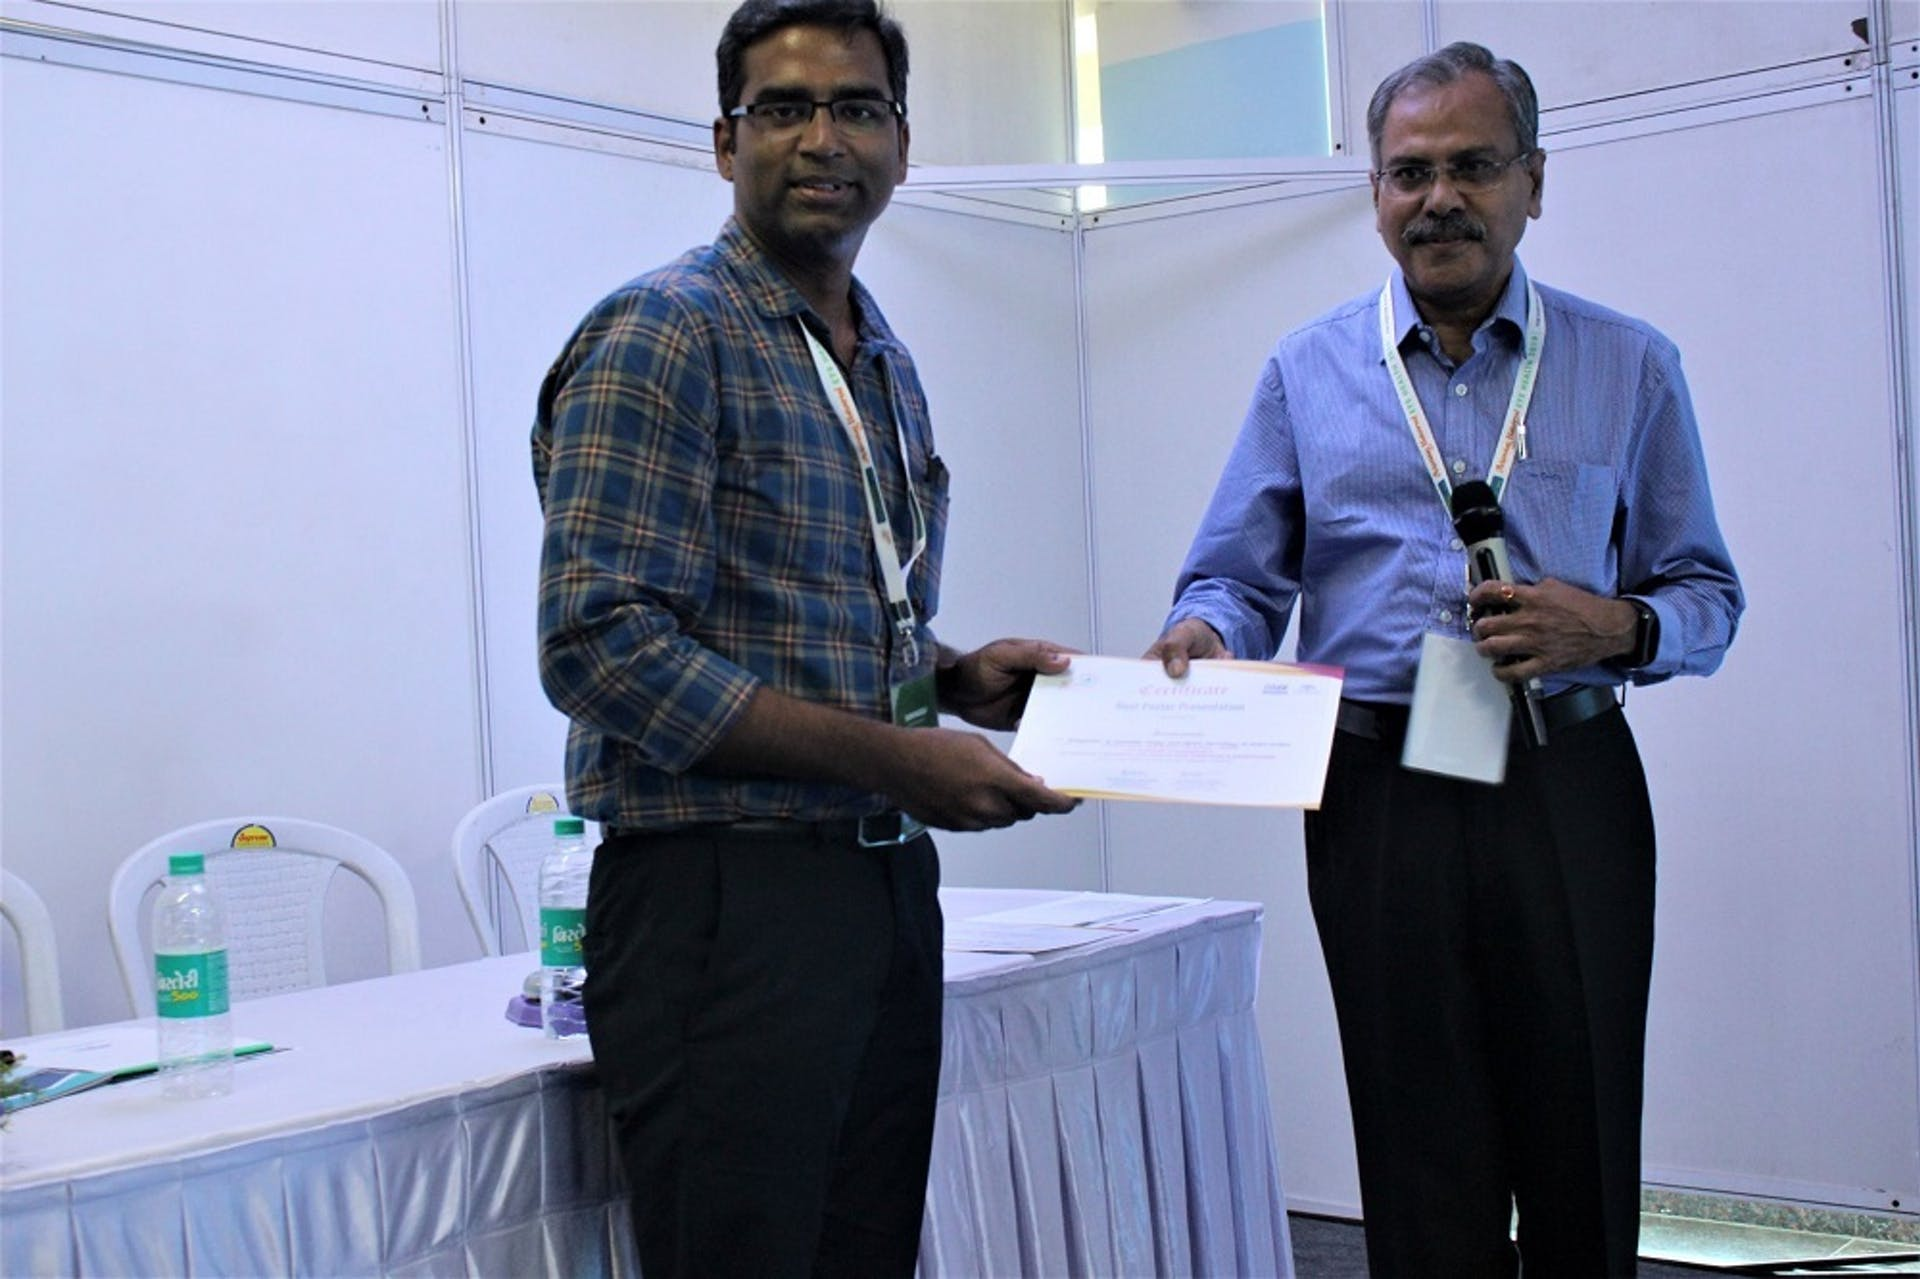 Srinivasulu, Program Development Manager,  presented on 'Integration of renewable energy and digital technology at vision centers (VC) to provide access to uninterrupted primary eye care services for remote and underserved communities'